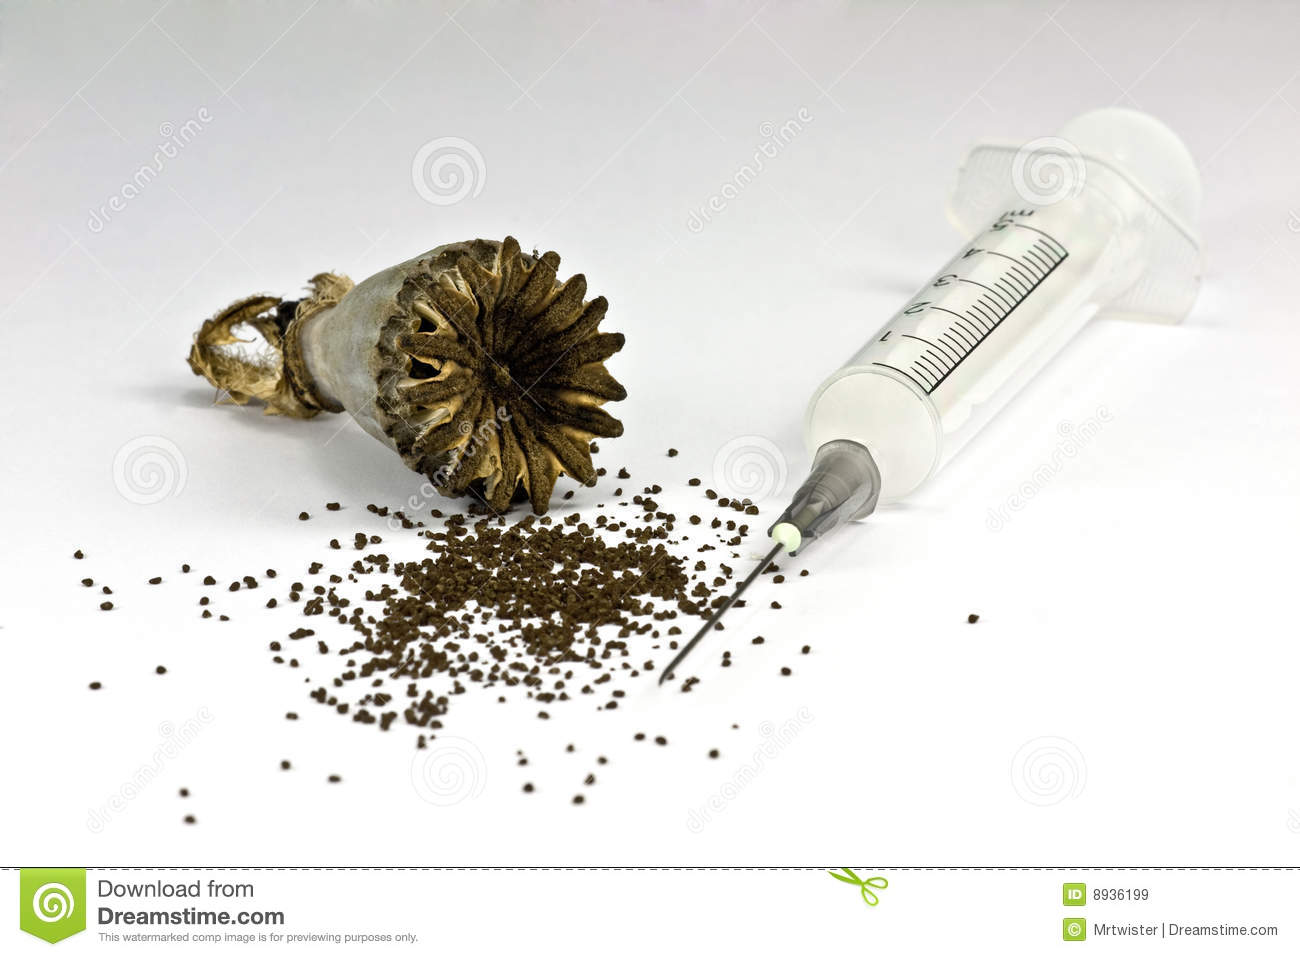 Close-up of opium poppy seed and a syringe on white background.